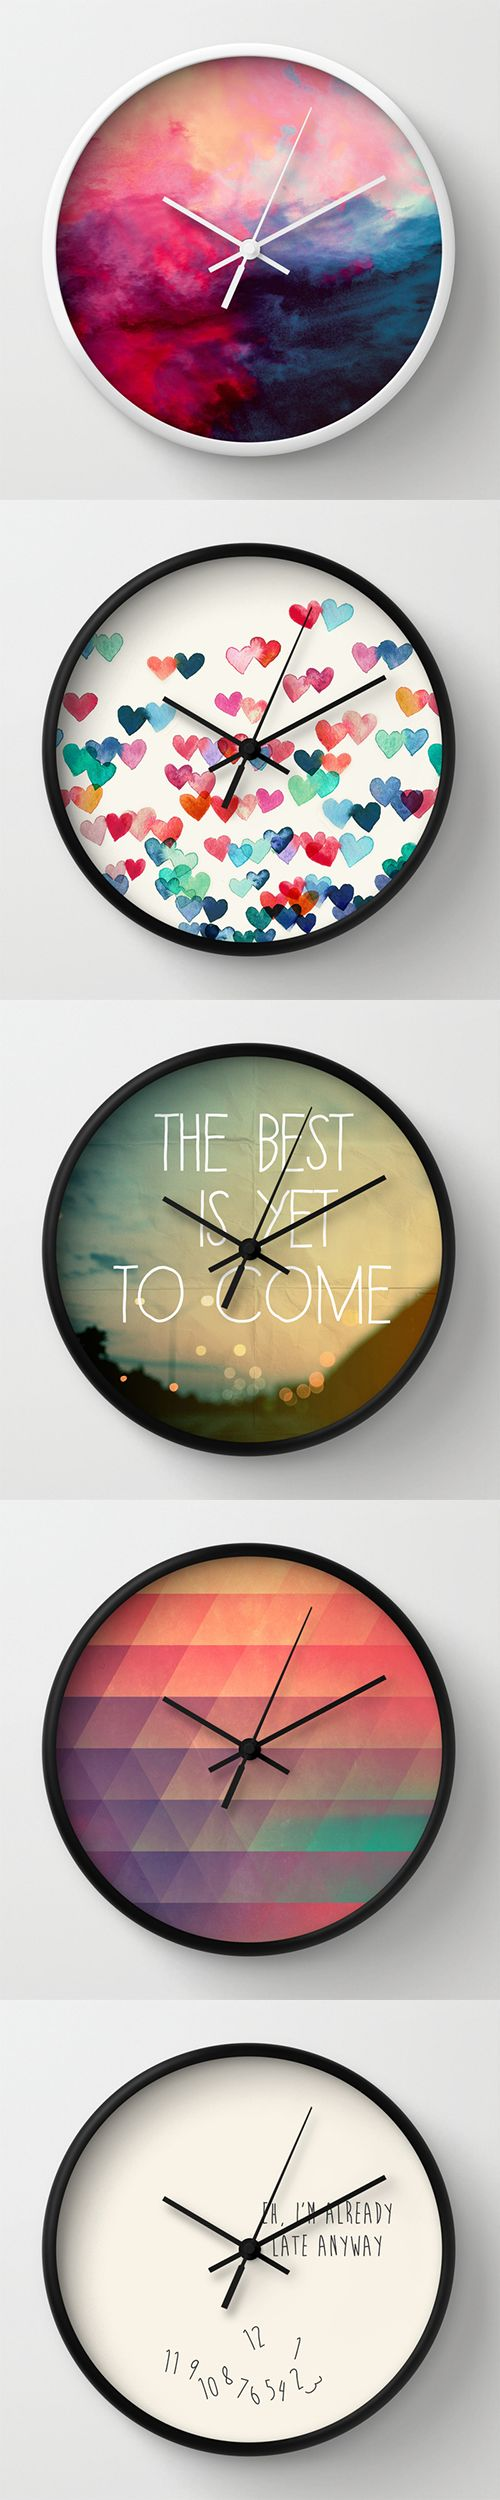 I need one of these clocks in my bedroom!